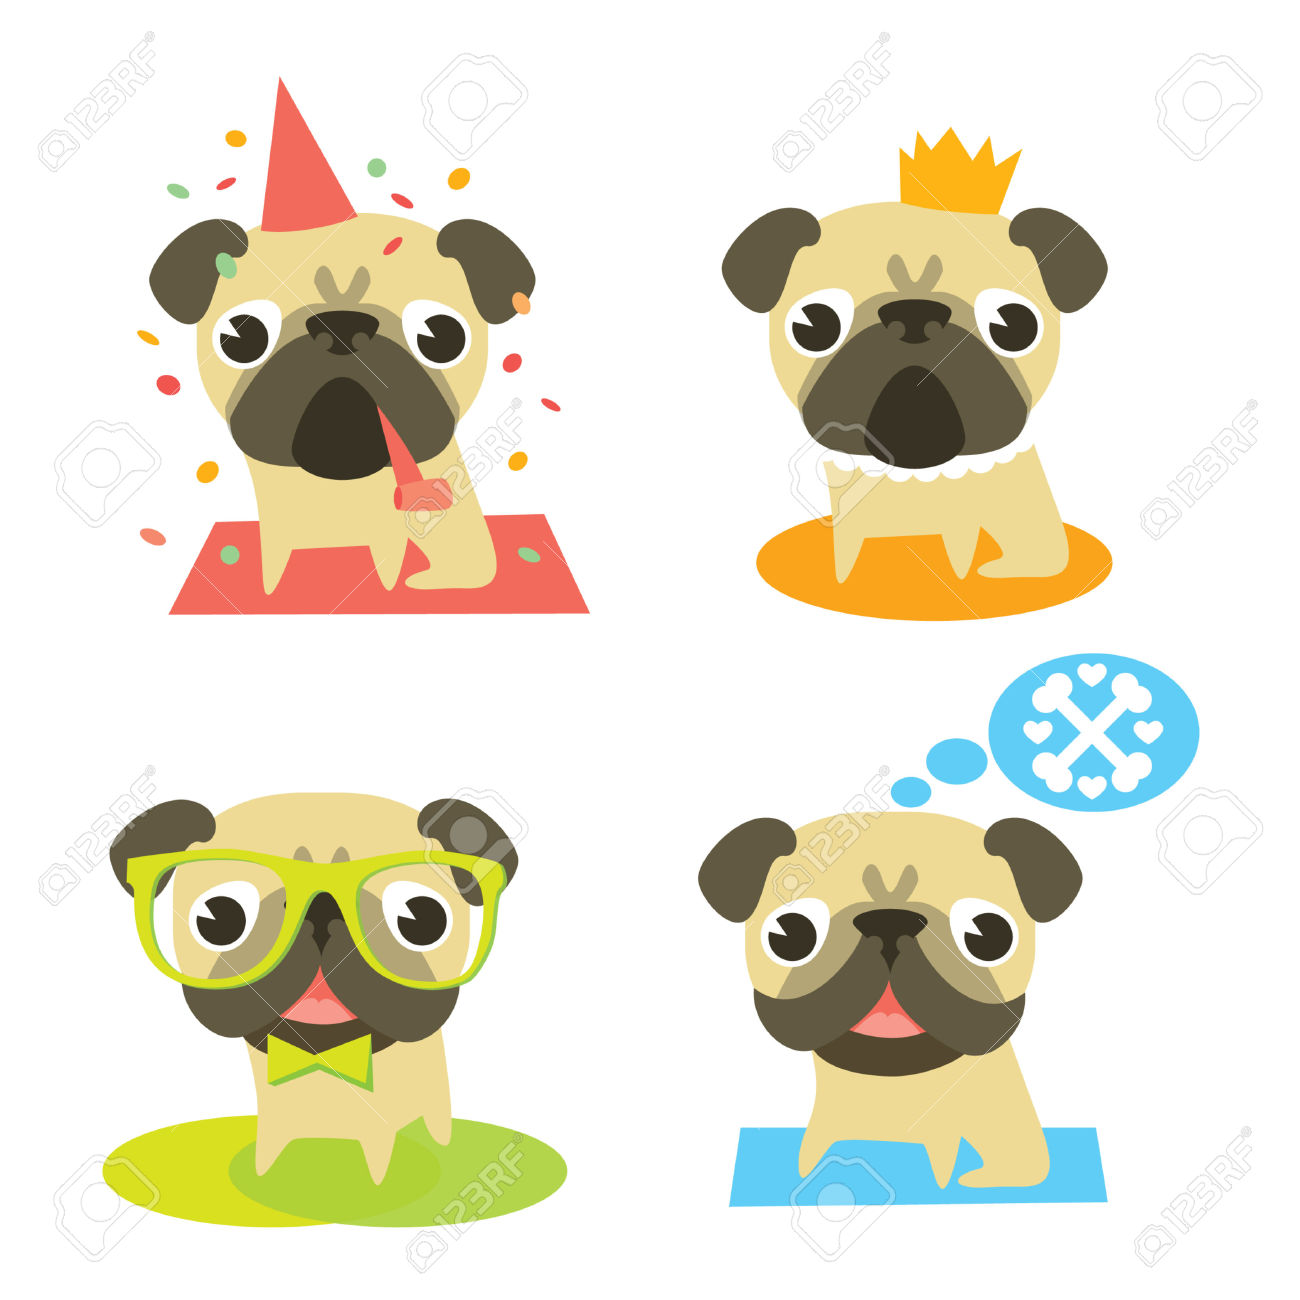 Free clipart images pug.